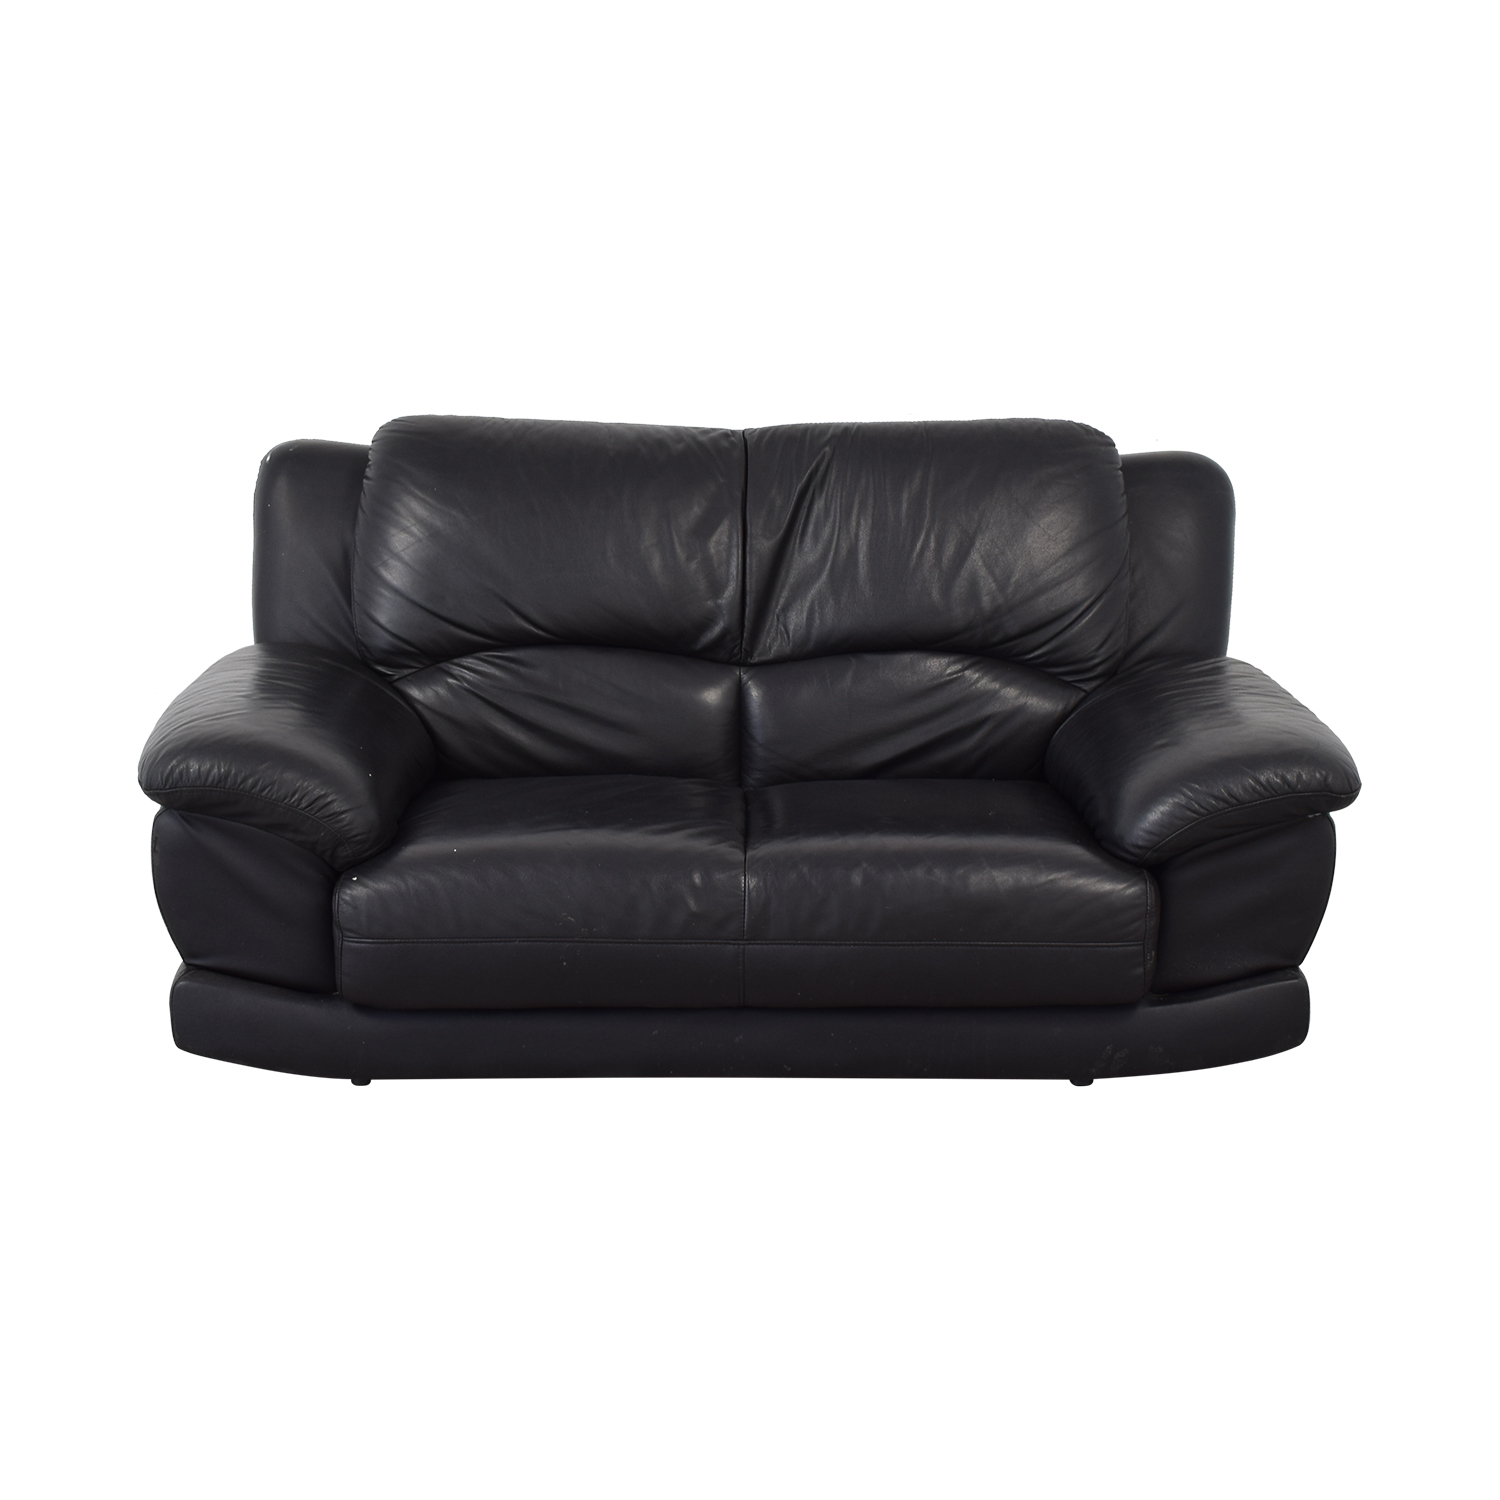 Ashley Furniture Ashley Furniture Leather Sofa used